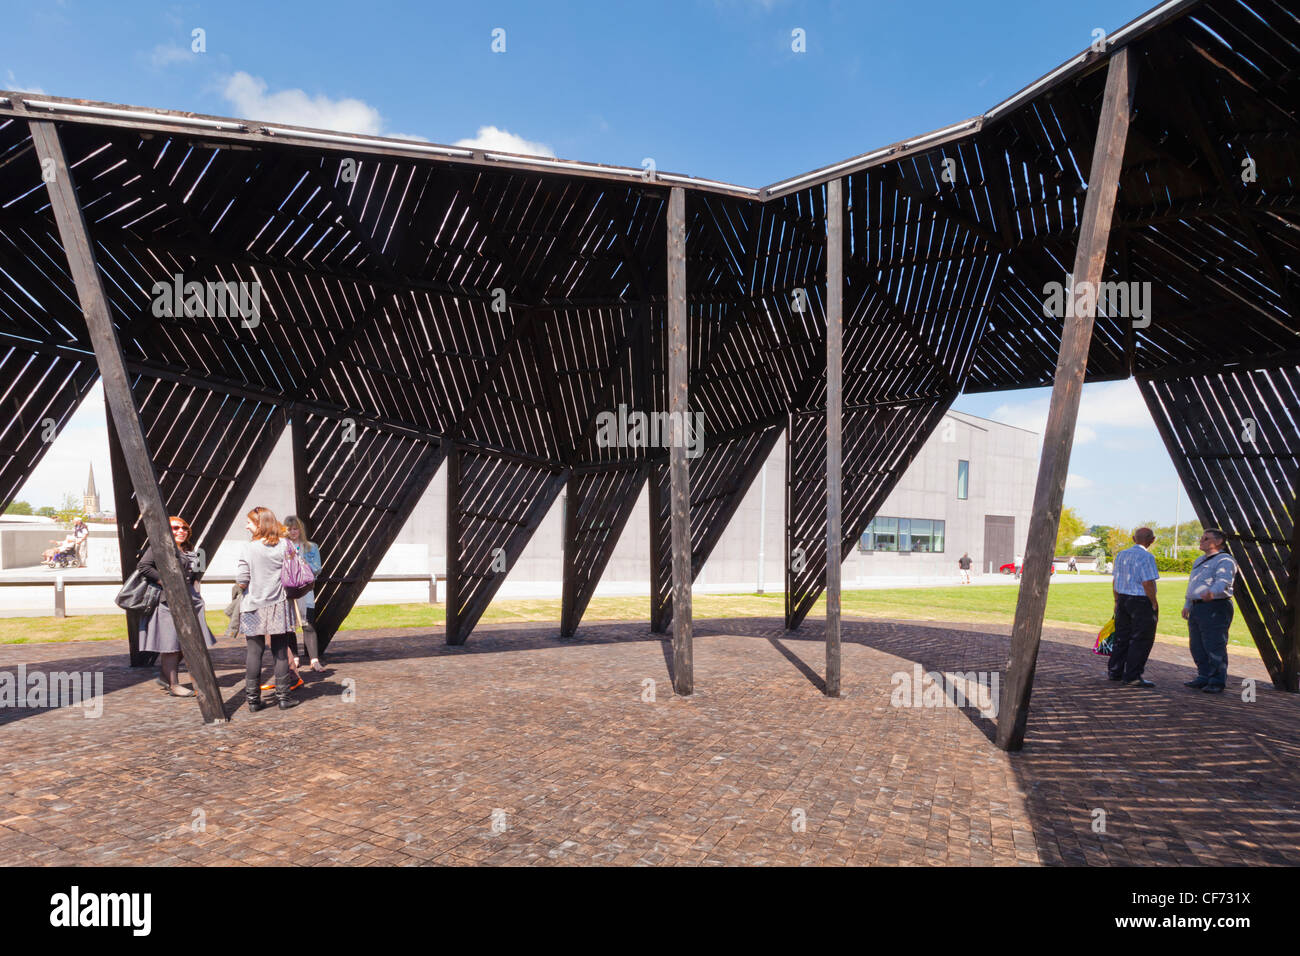 People enjoying an outdoor piece of art, The Black Cloud by Heather and Ivan Morison, at the Hepworth Wakefield, - Stock Image